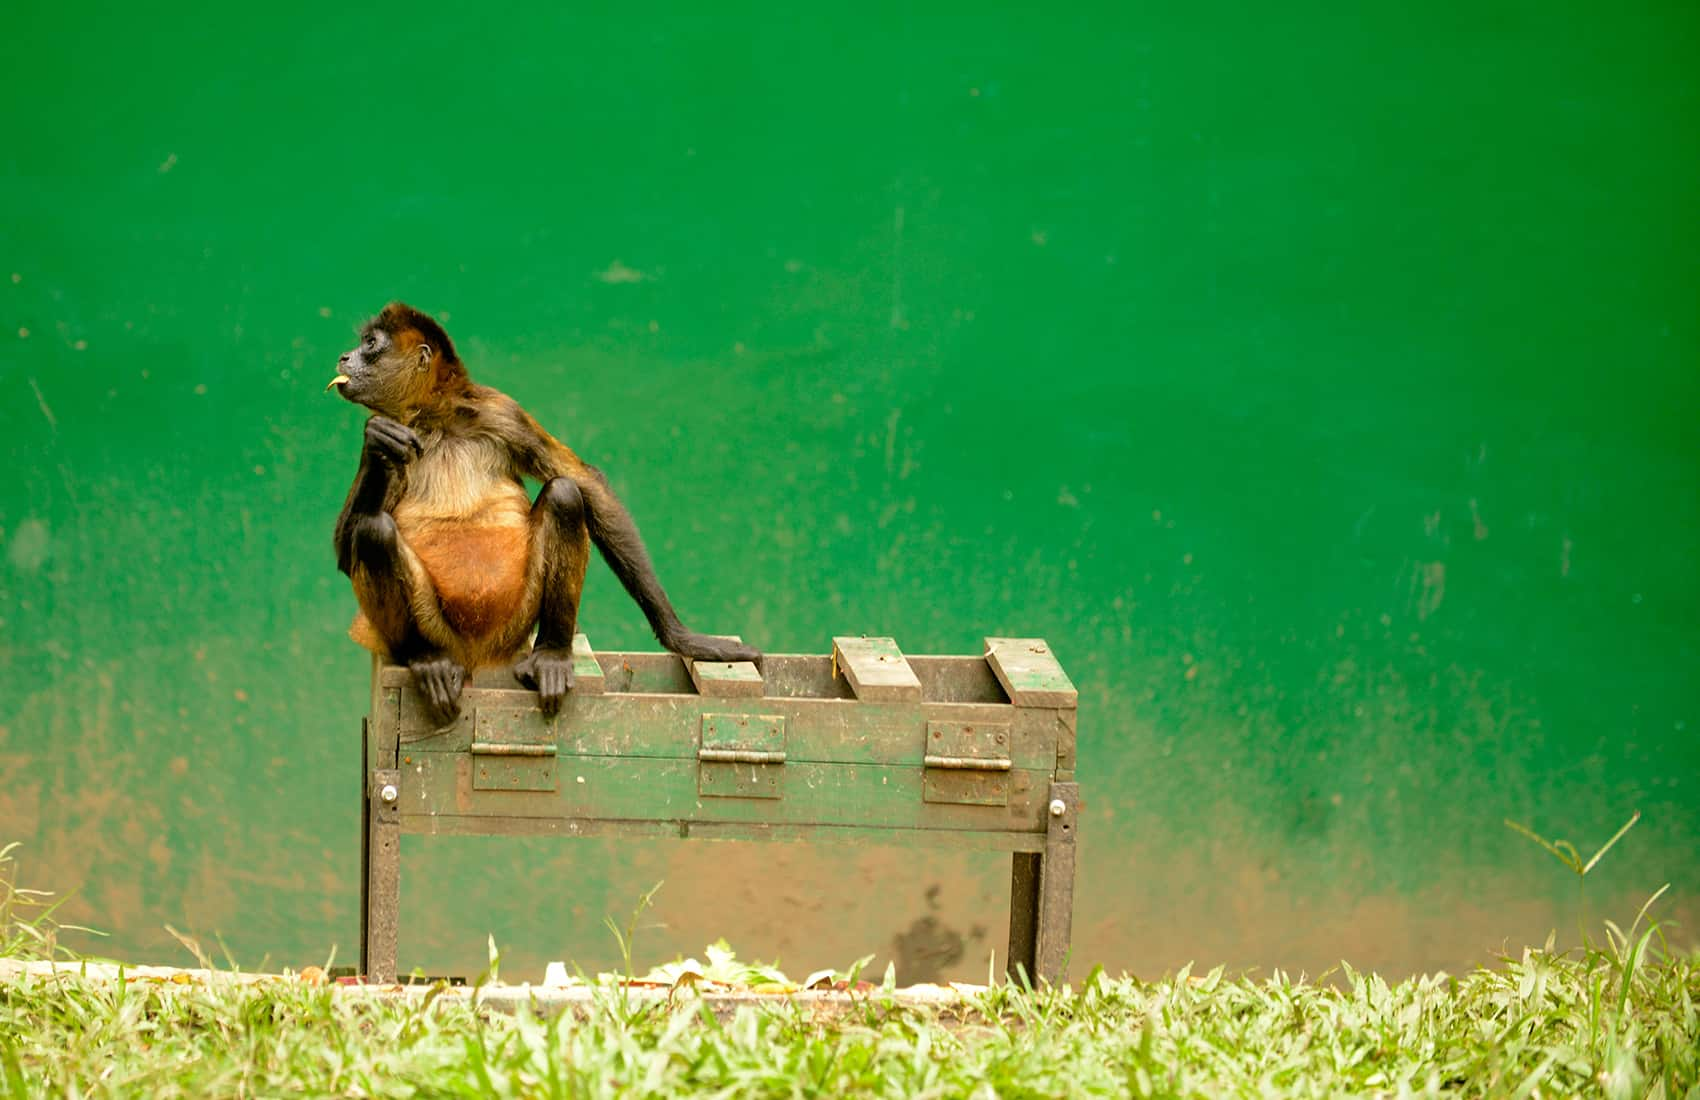 What are the social, environmental and political implications of zoos?